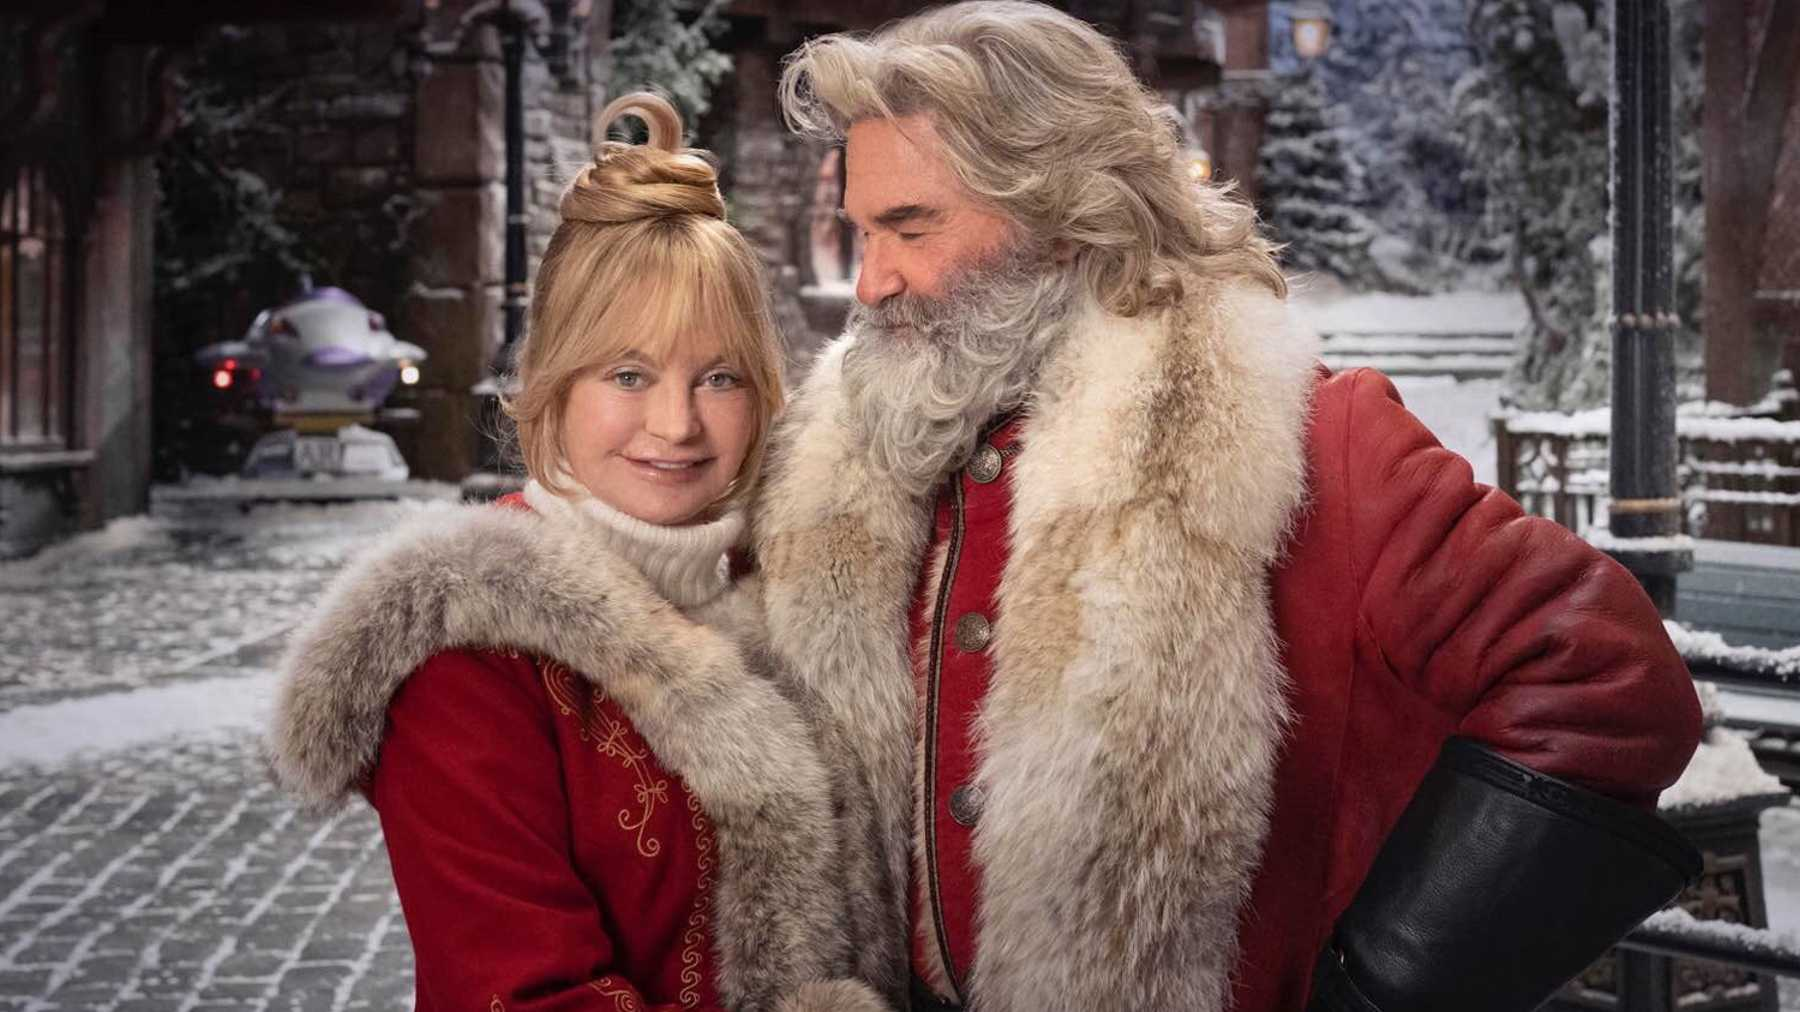 Christmas Chronicles 2020 Cast The Christmas Chronicles 2 Coming To Netflix – With Goldie Hawn As